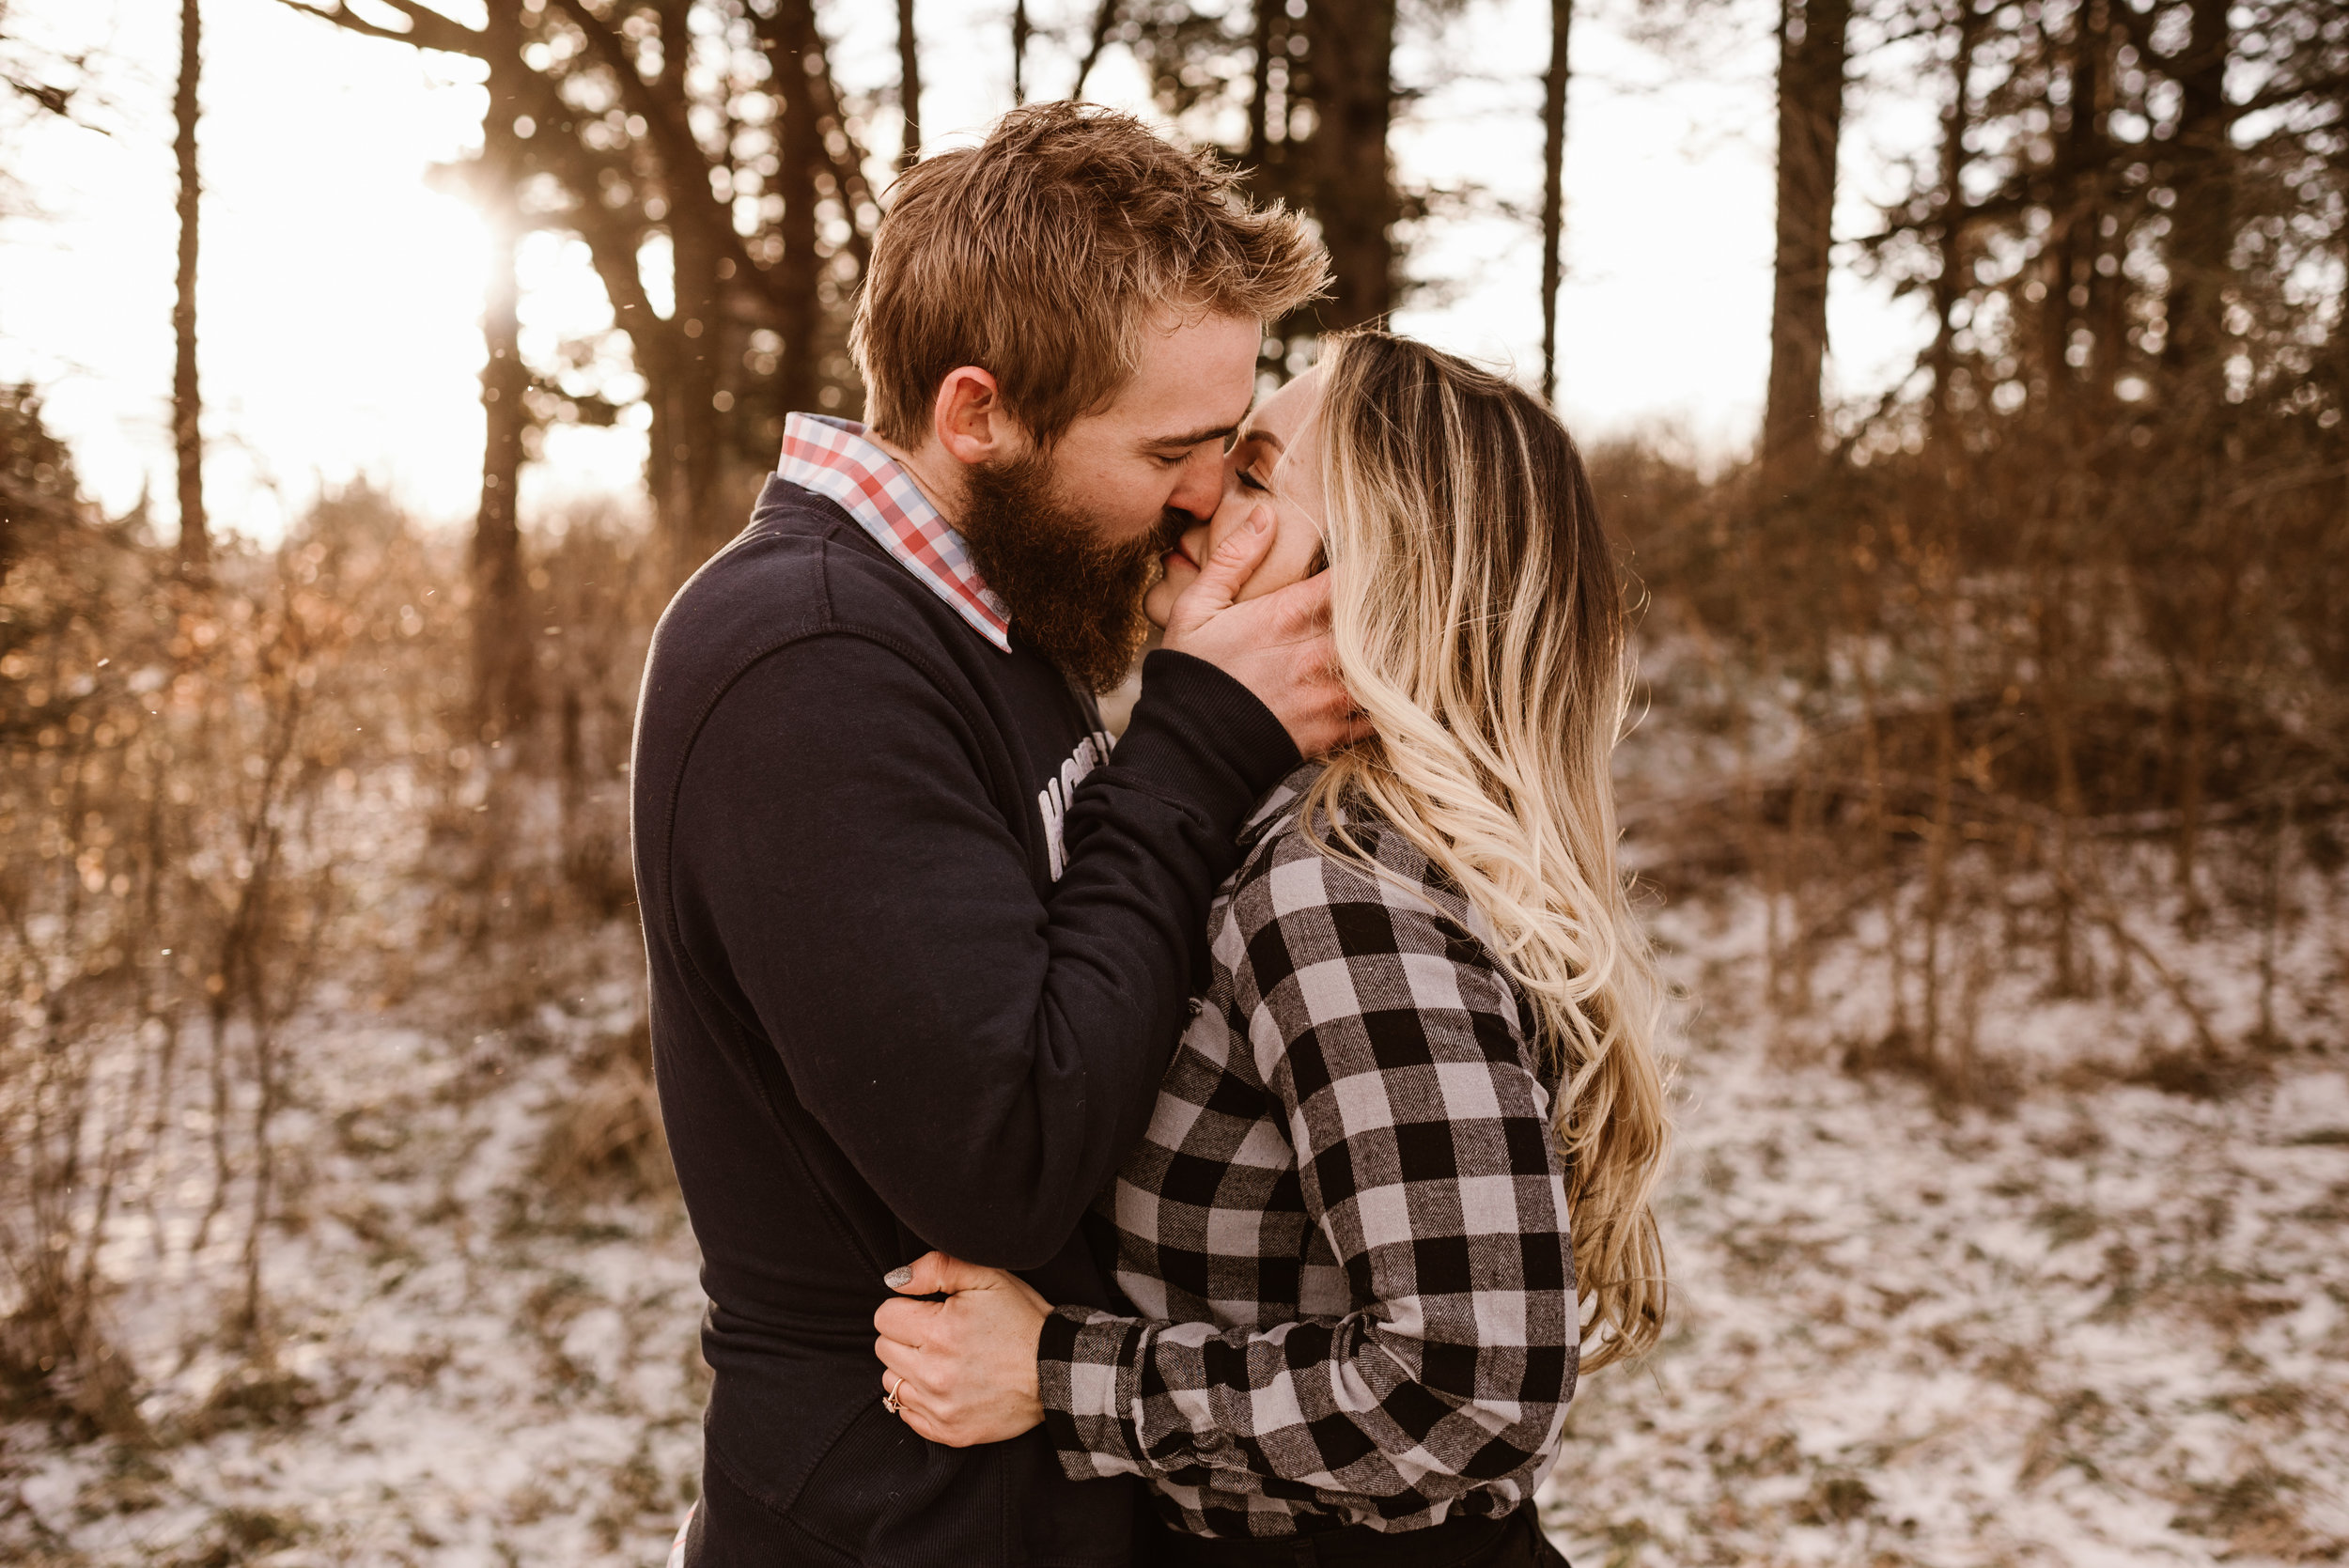 Nebraska Engagement Photographer Kaylie Sirek Photography 014.jpg